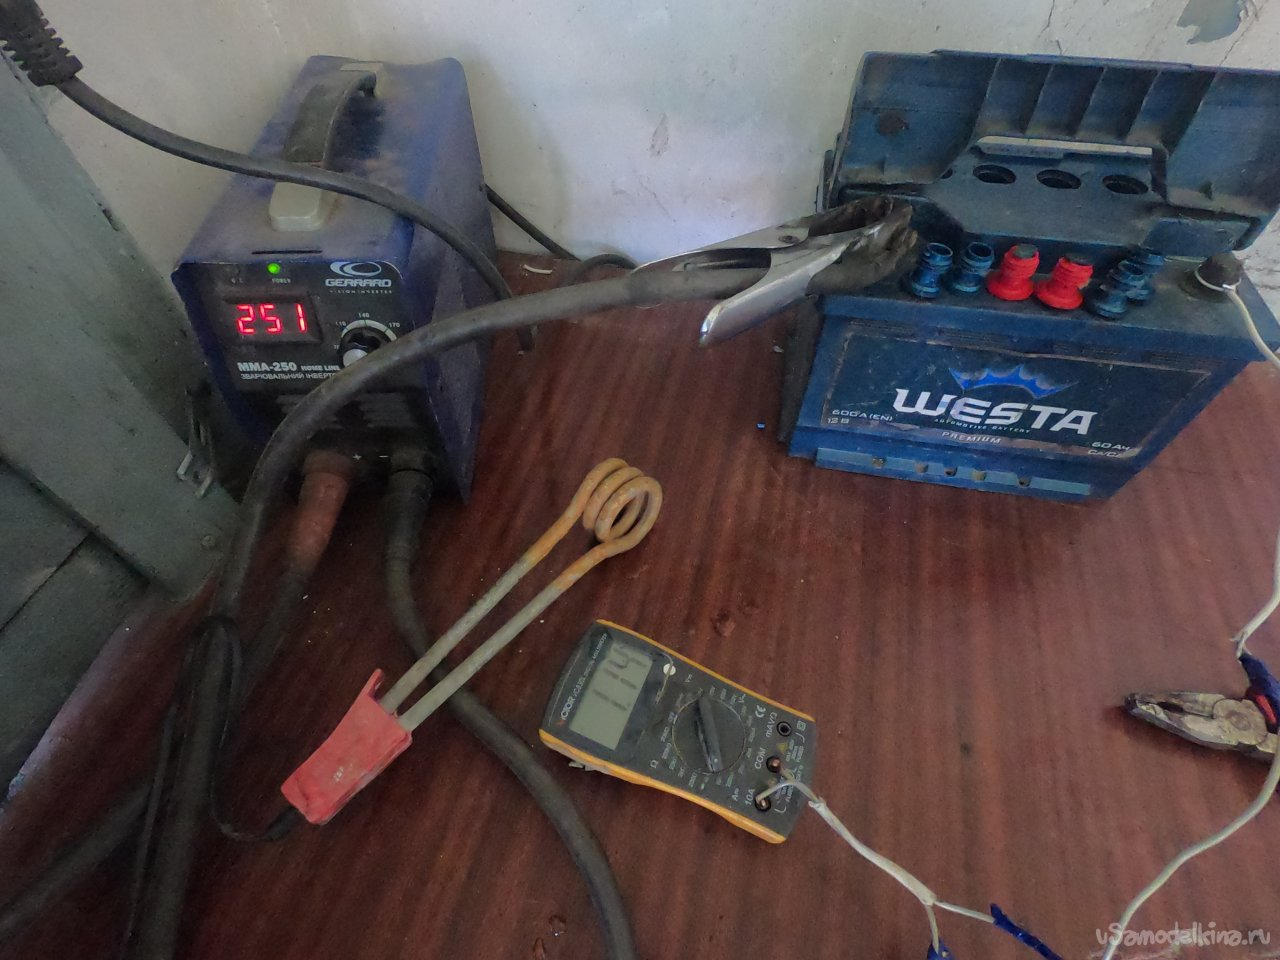 We charge the battery from the welder and the boiler